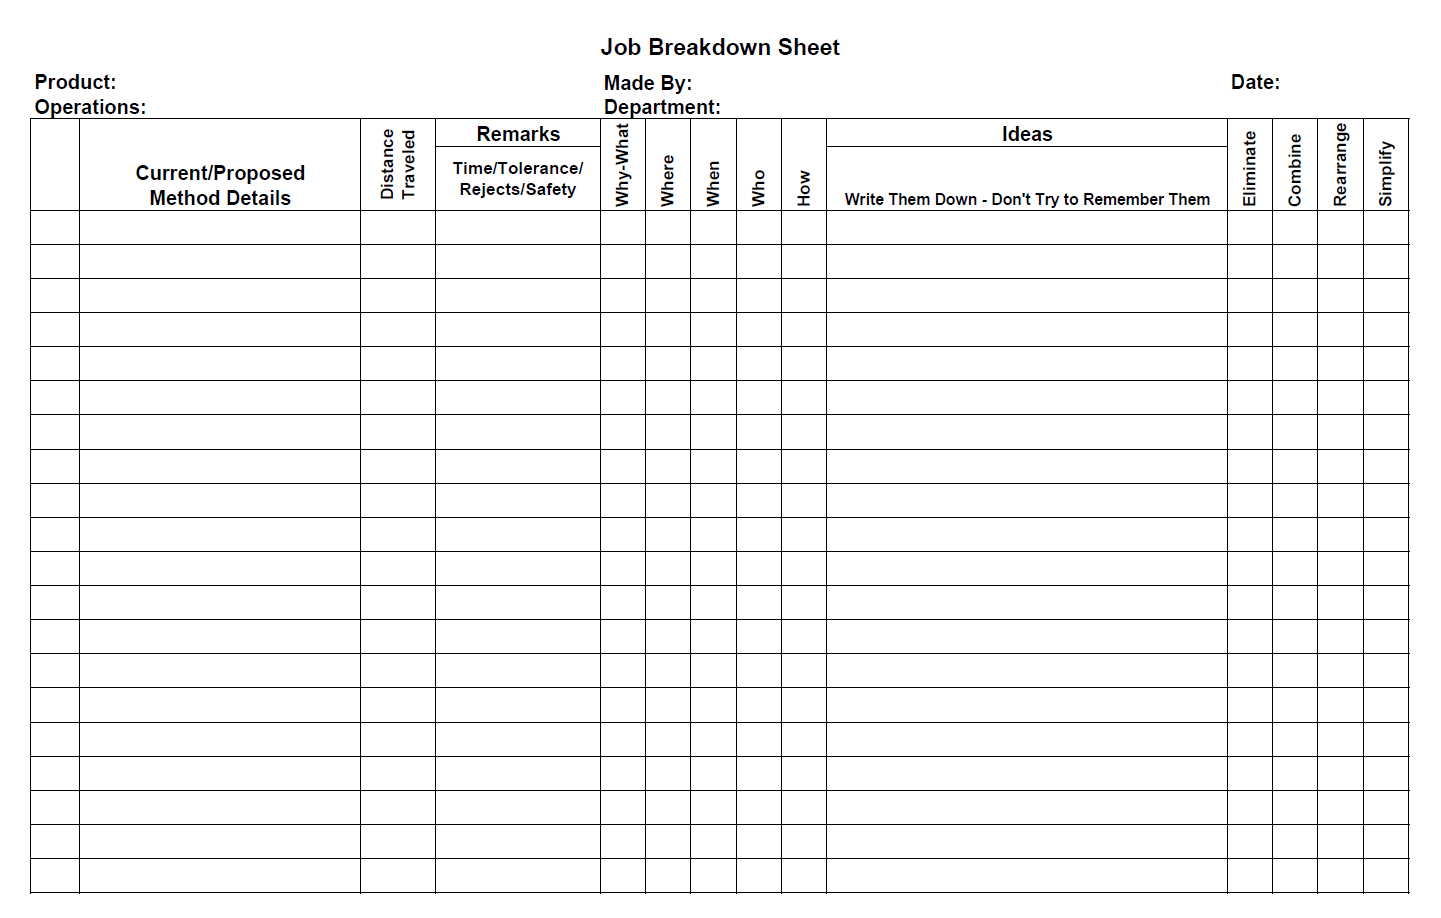 Jm Job Breakdown Sheet Blank